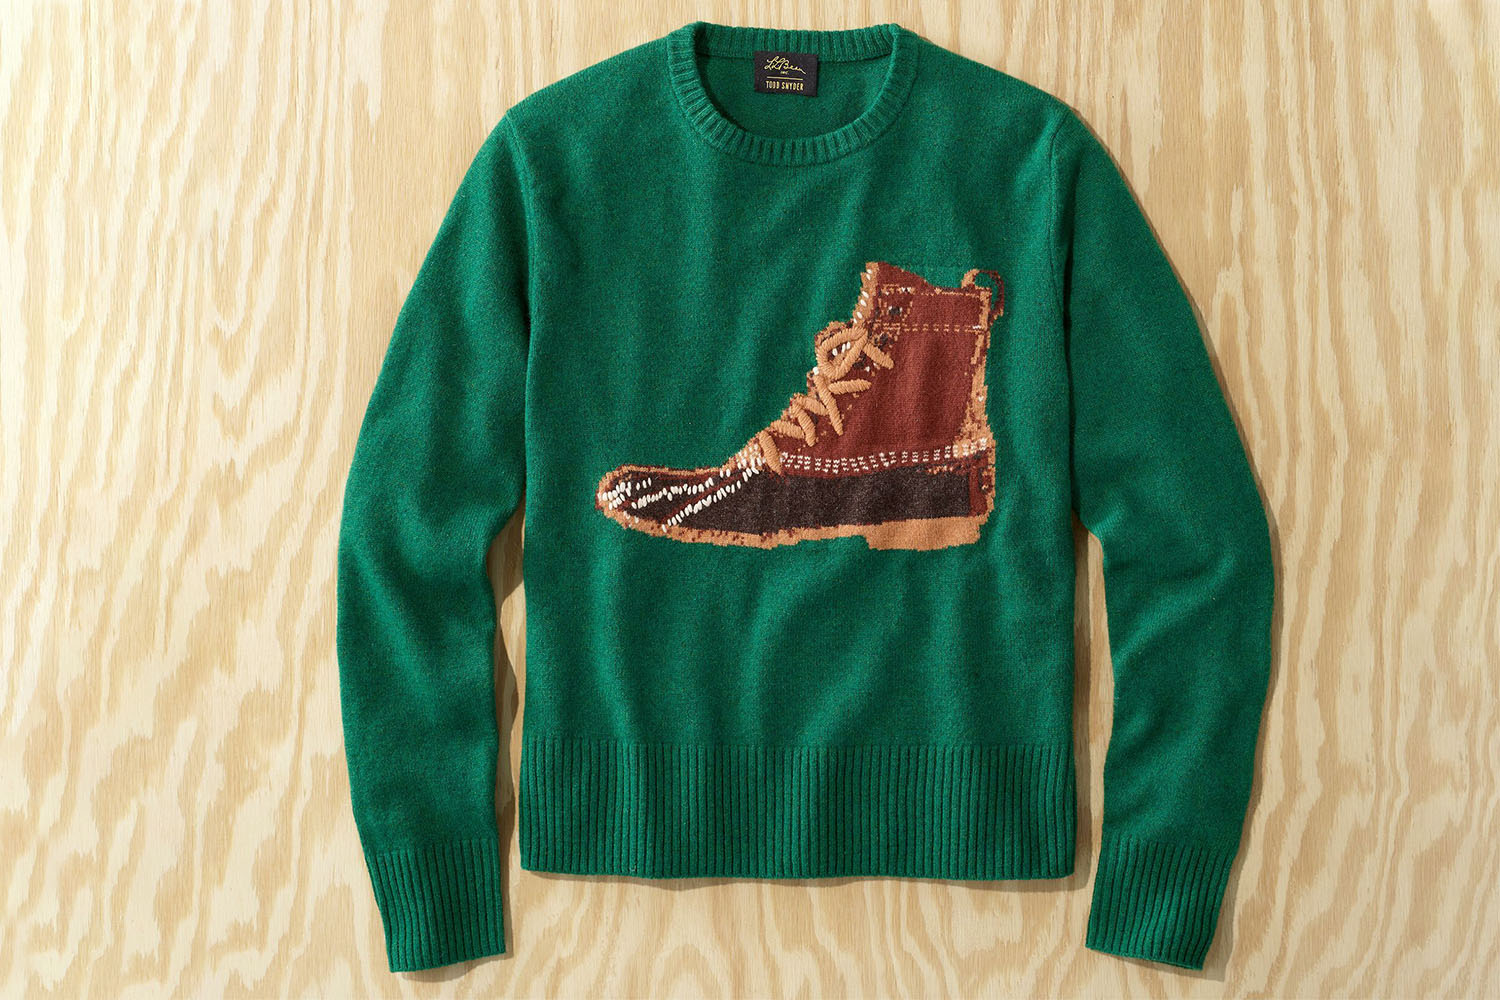 Boot sweater